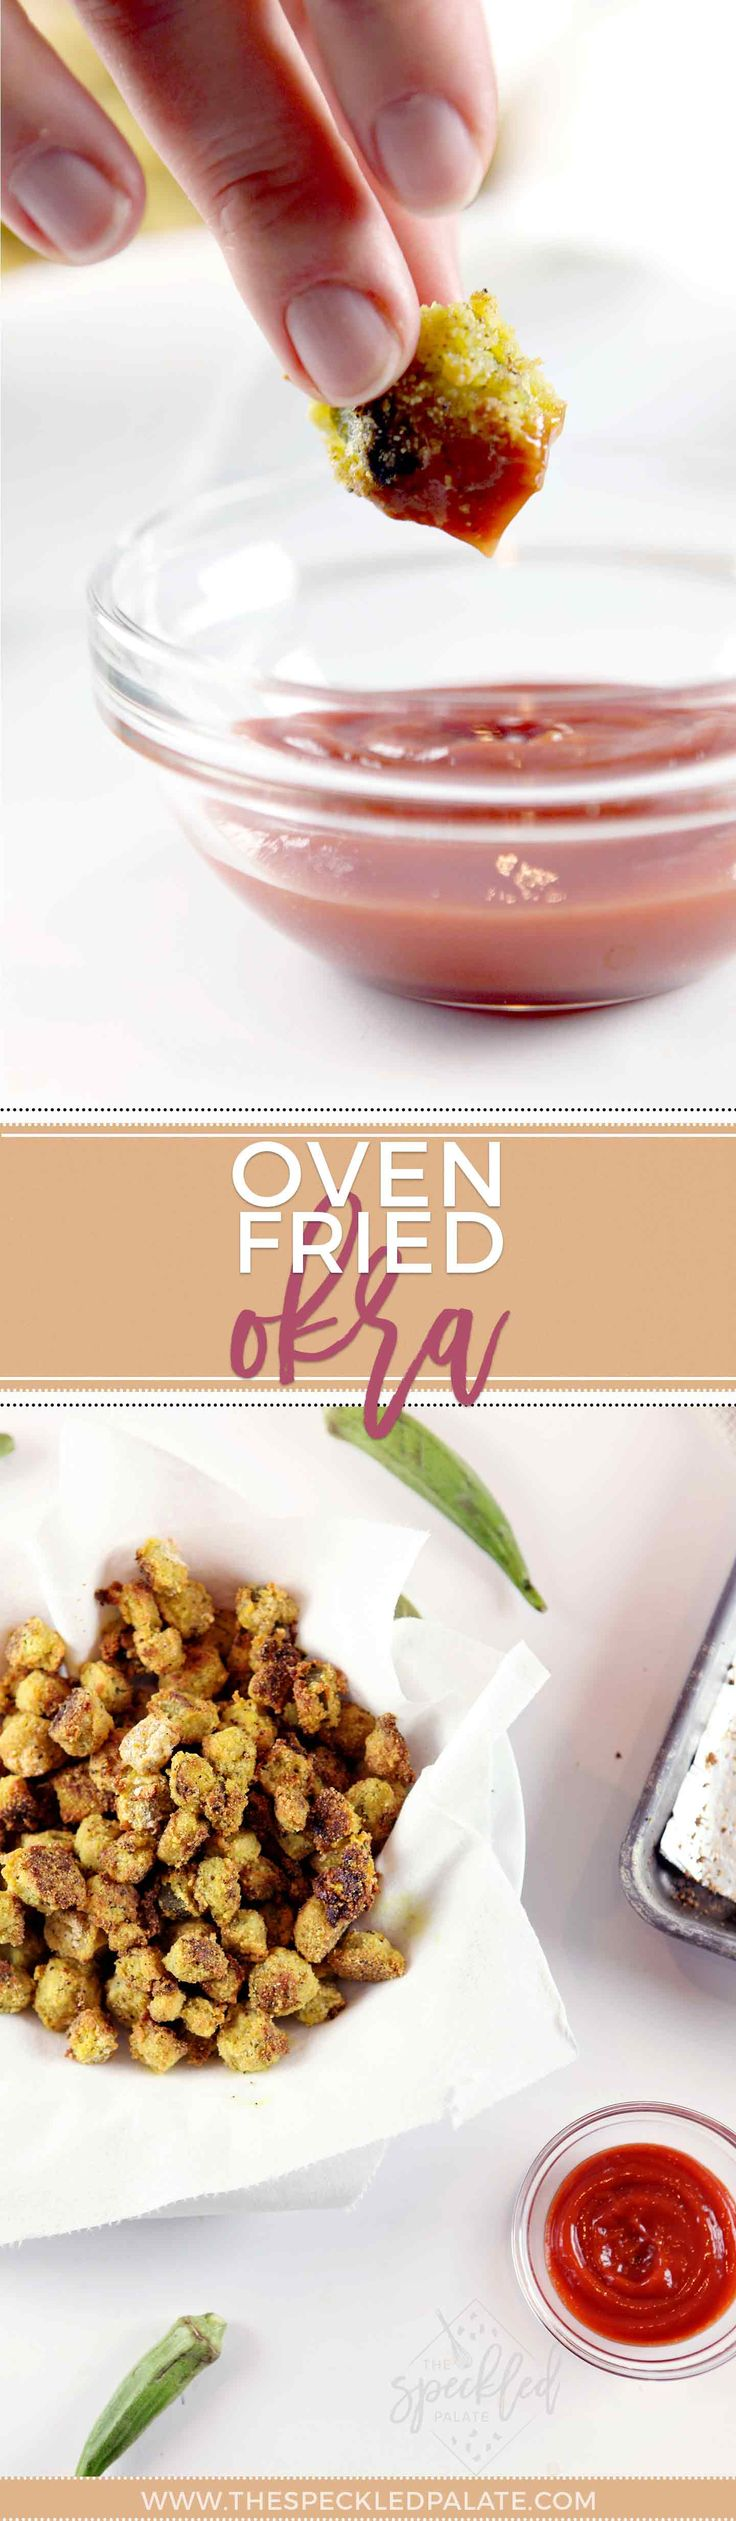 Fried Okra | Healthier Side Dish | Oven Fried Okra | Southern Side Dish | Southern Recipe  via @speckledpalate